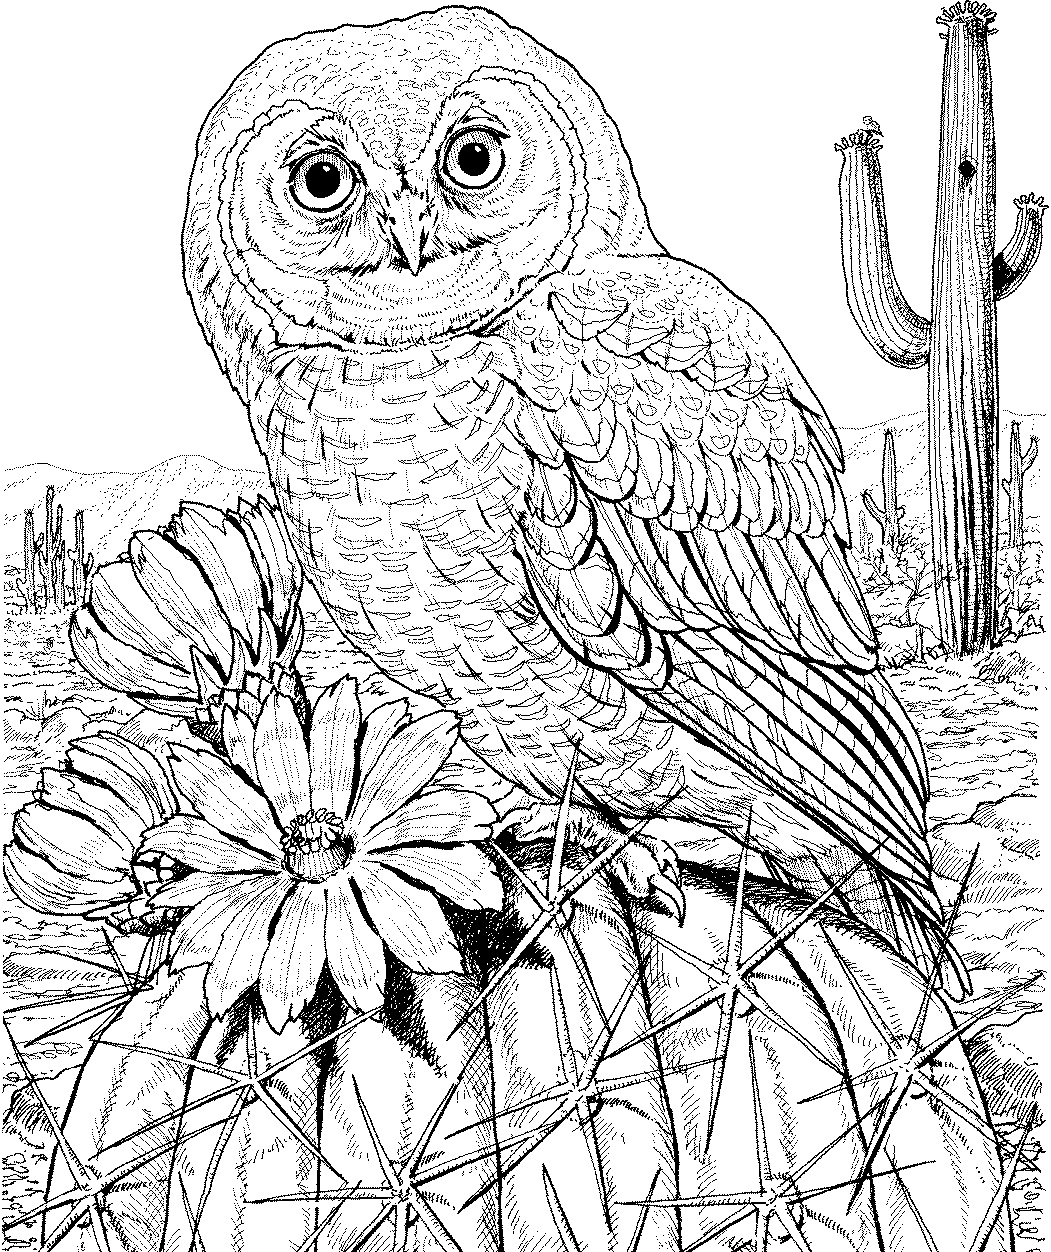 owl images to color owl coloring pages for adults free detailed owl coloring to color images owl